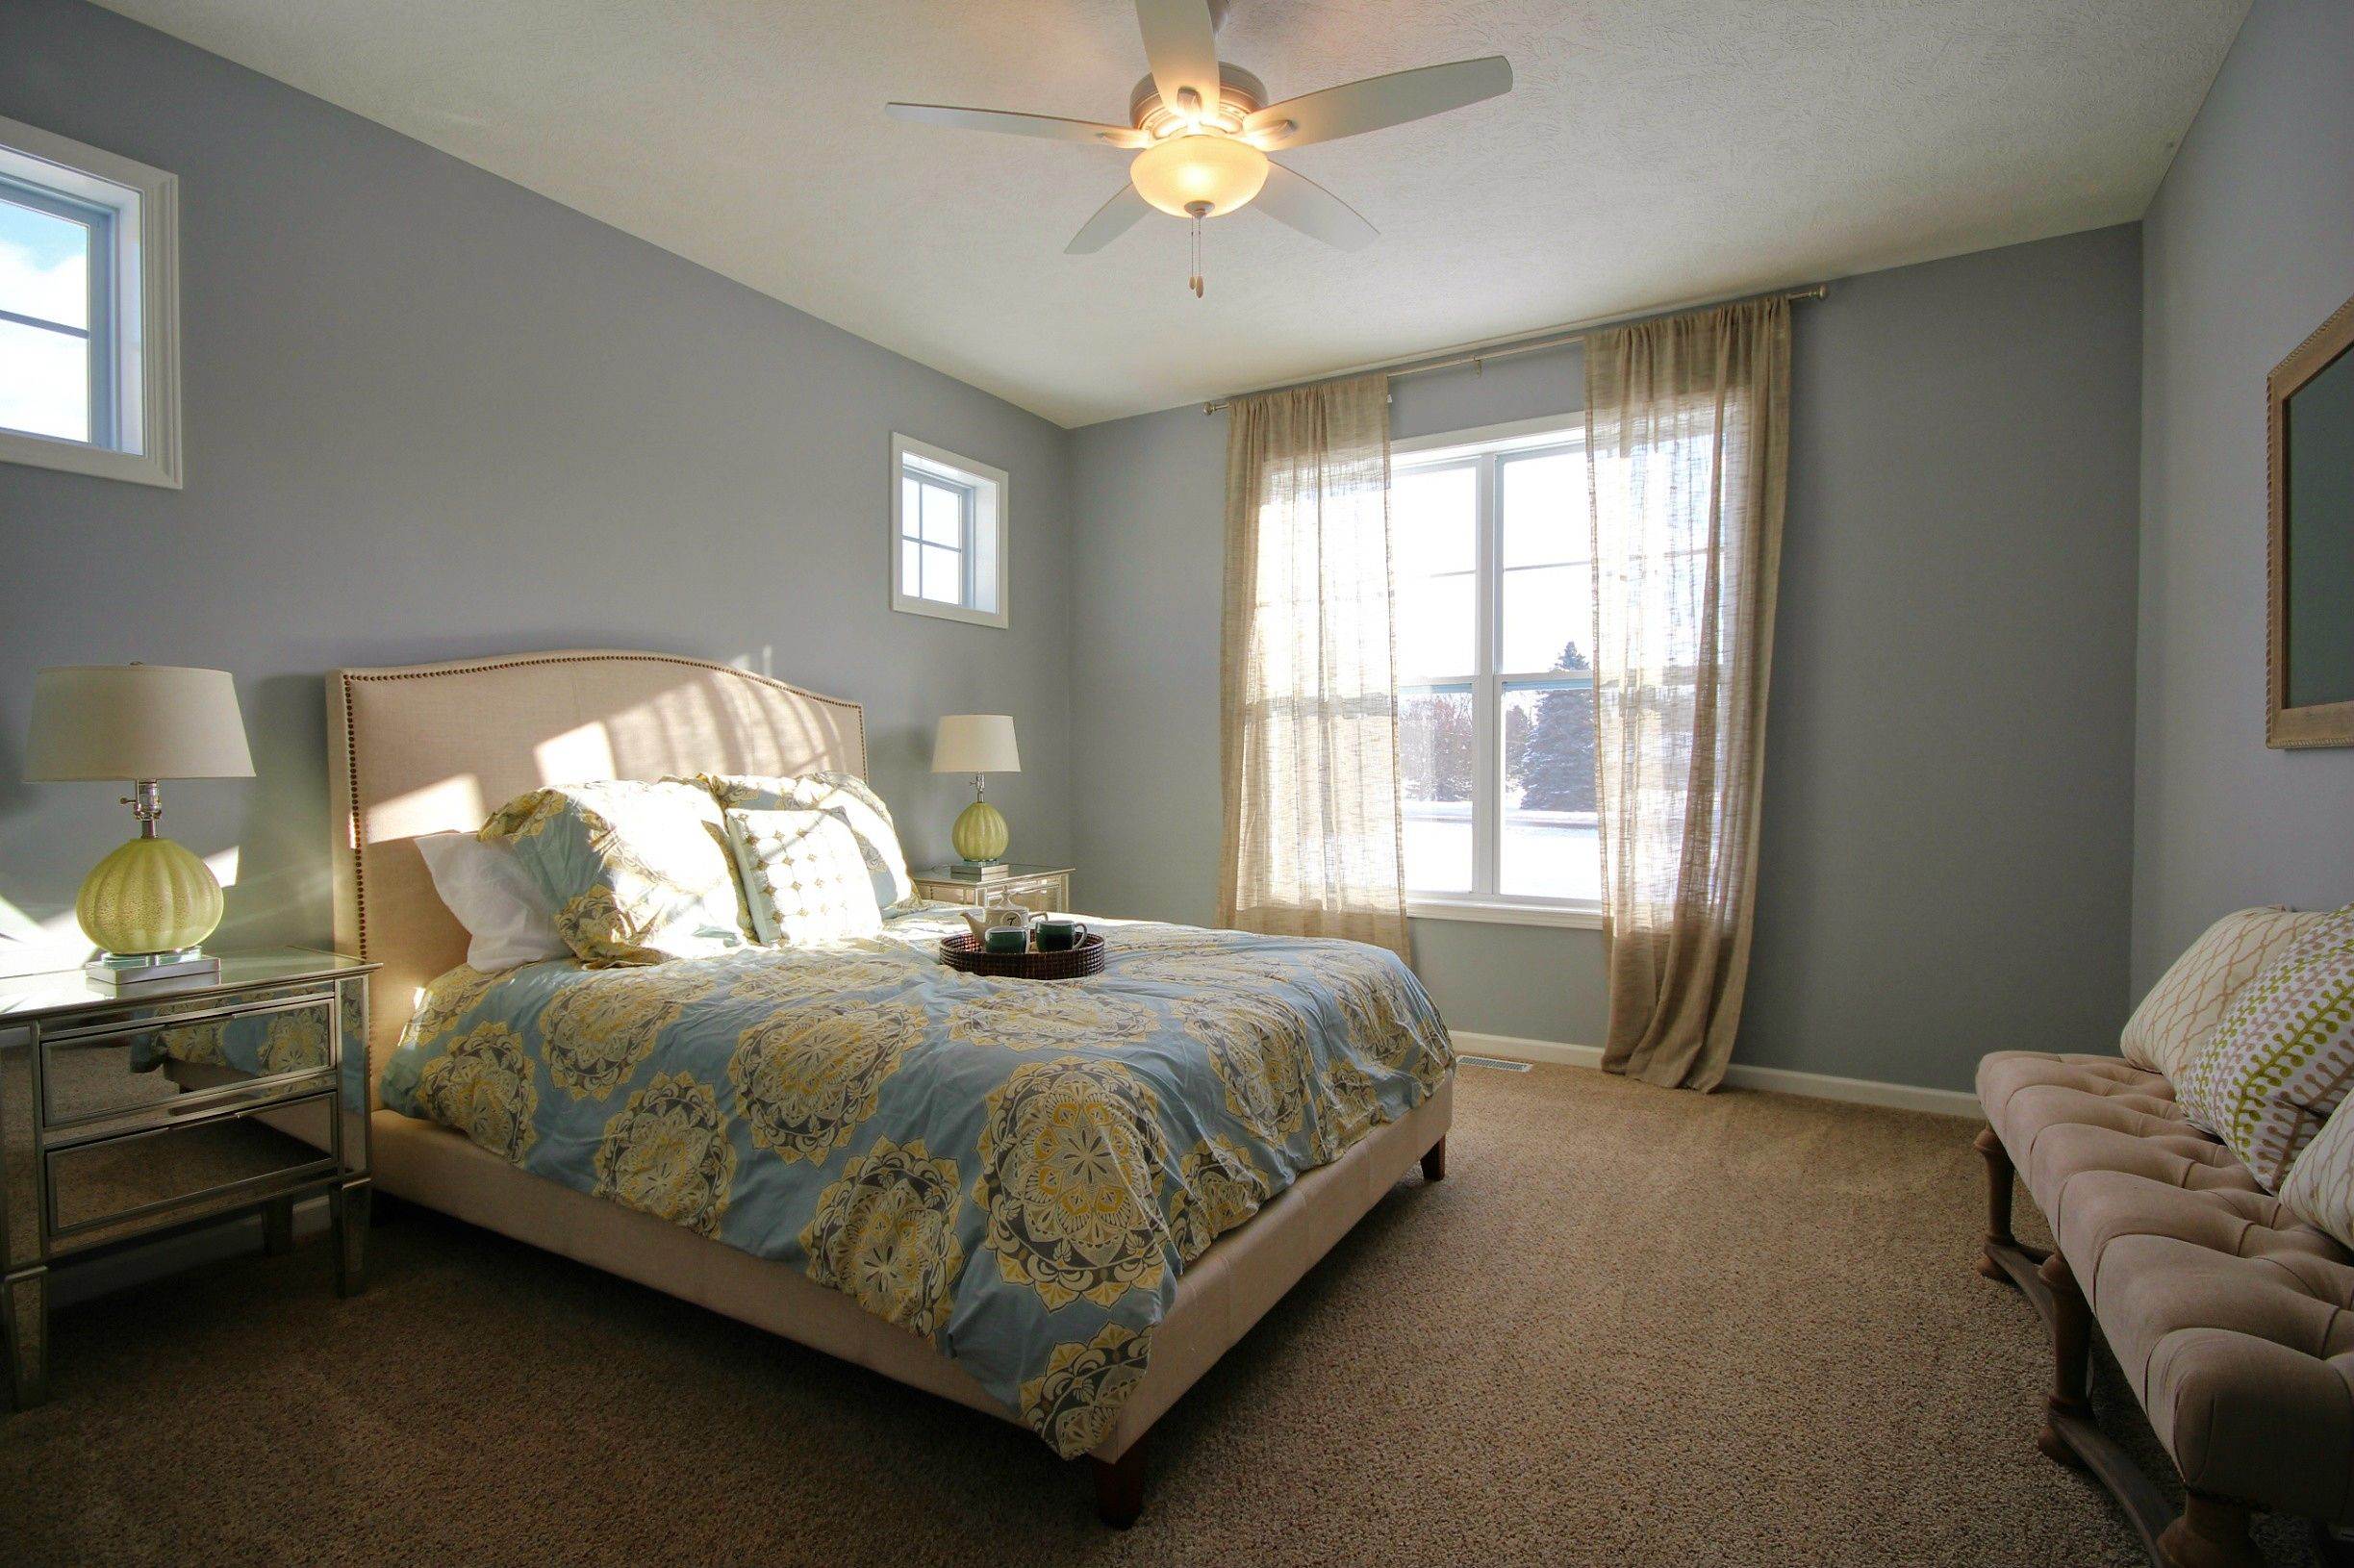 Bedroom featured in the Newcastle By Mayberry Homes in Lansing, MI